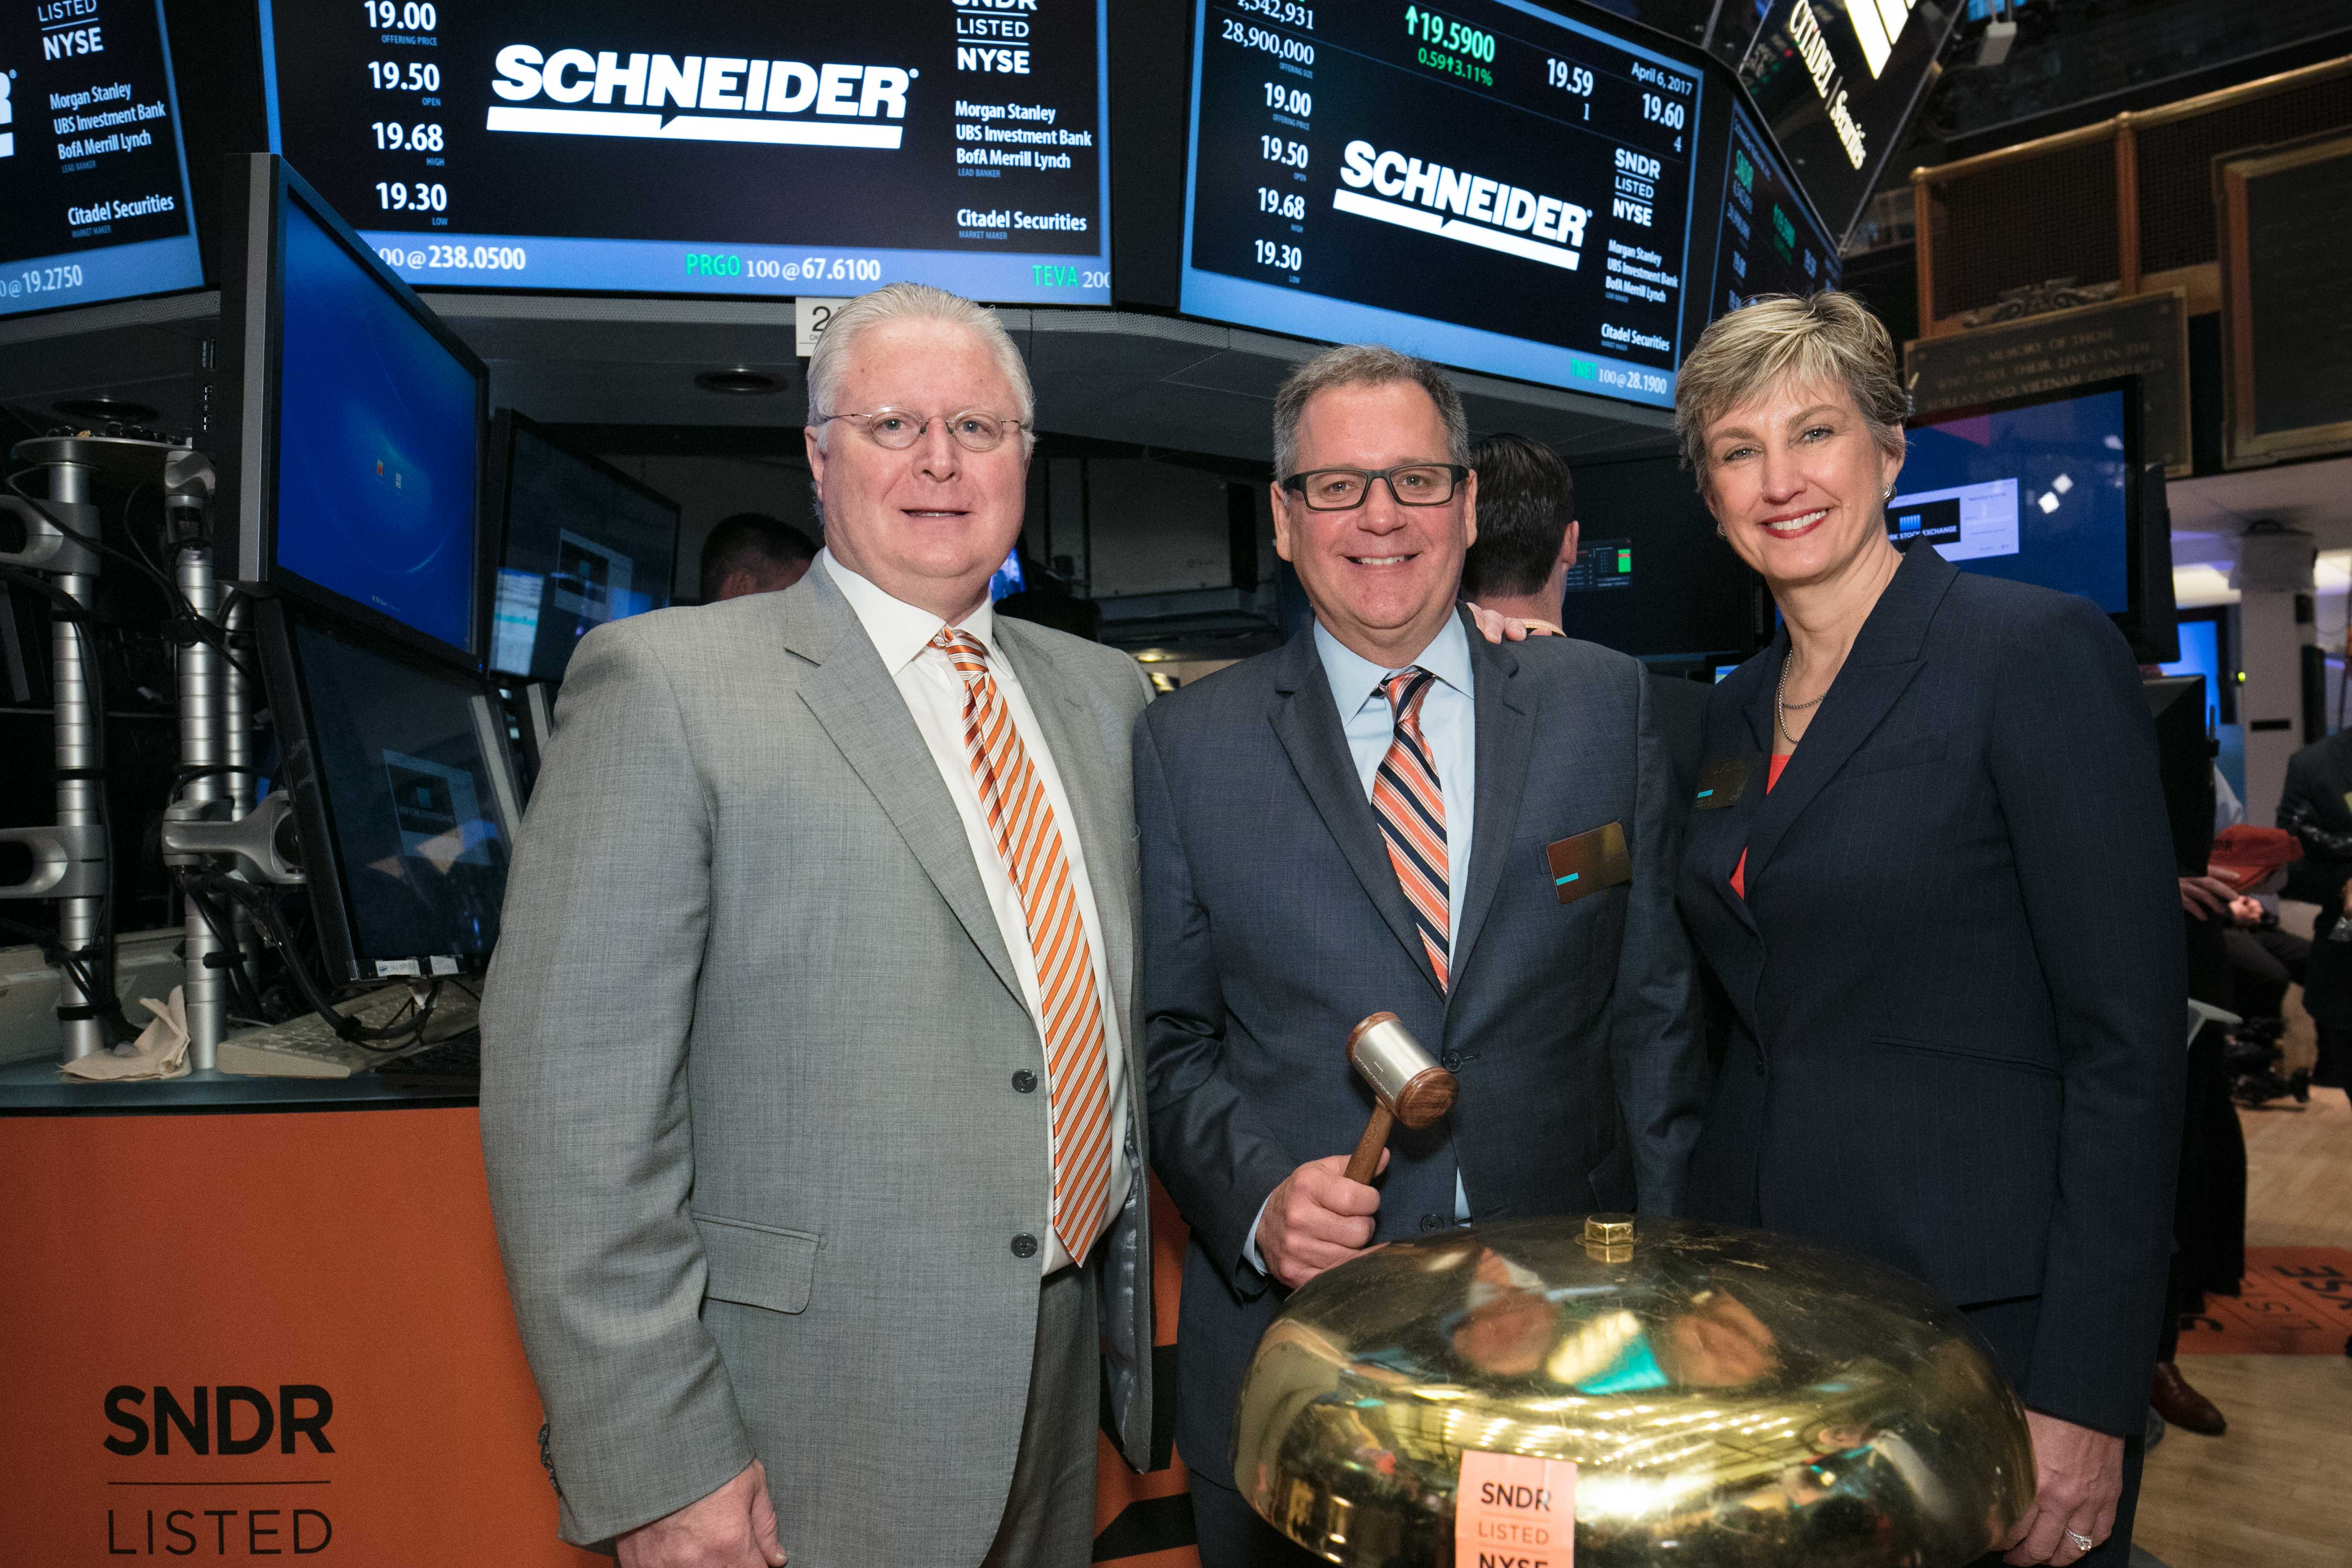 Schneider Leadership Team